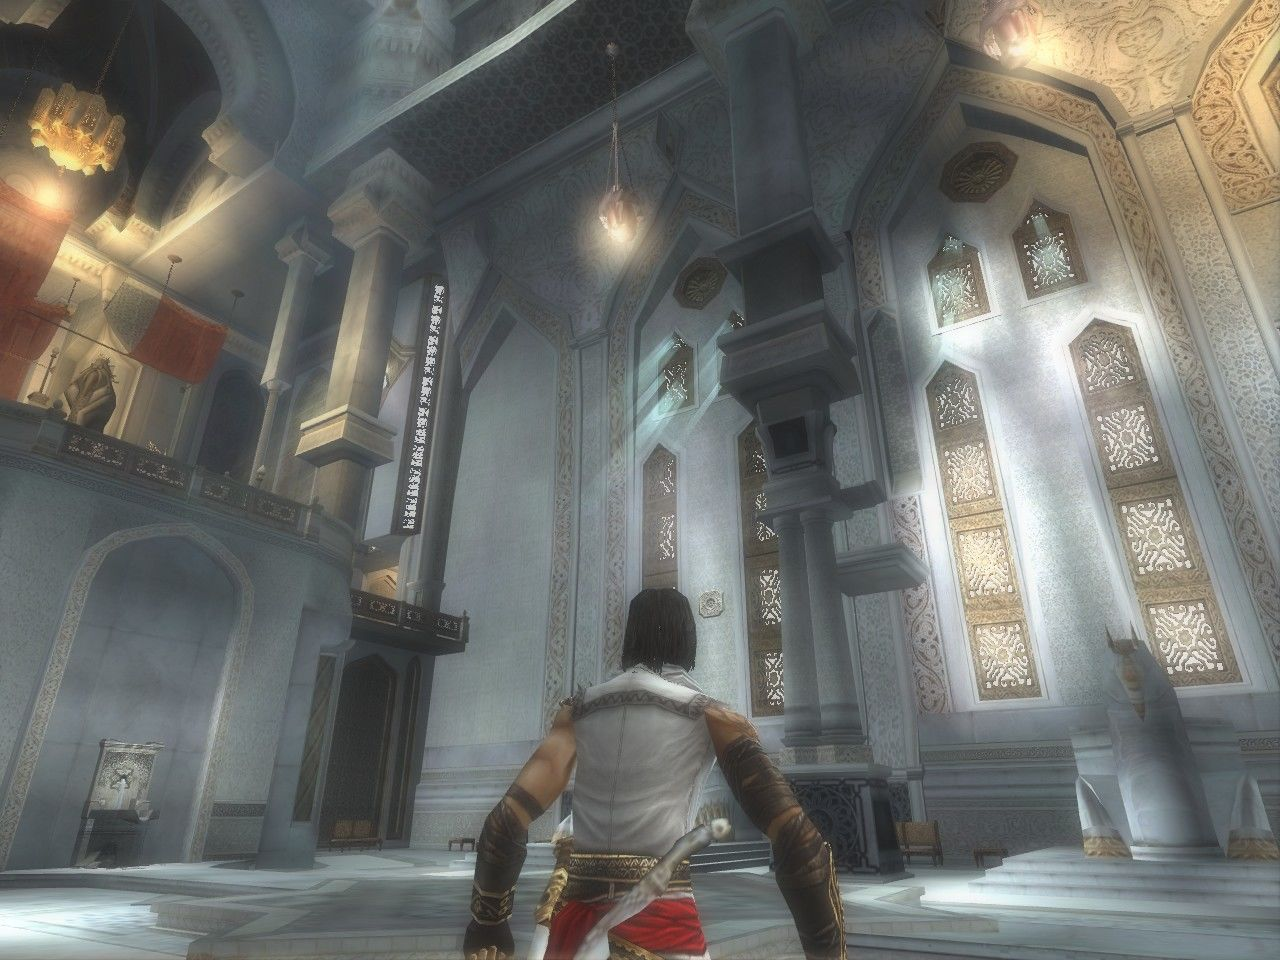 Prince of Persia: The Two Thrones Windows The throne room.